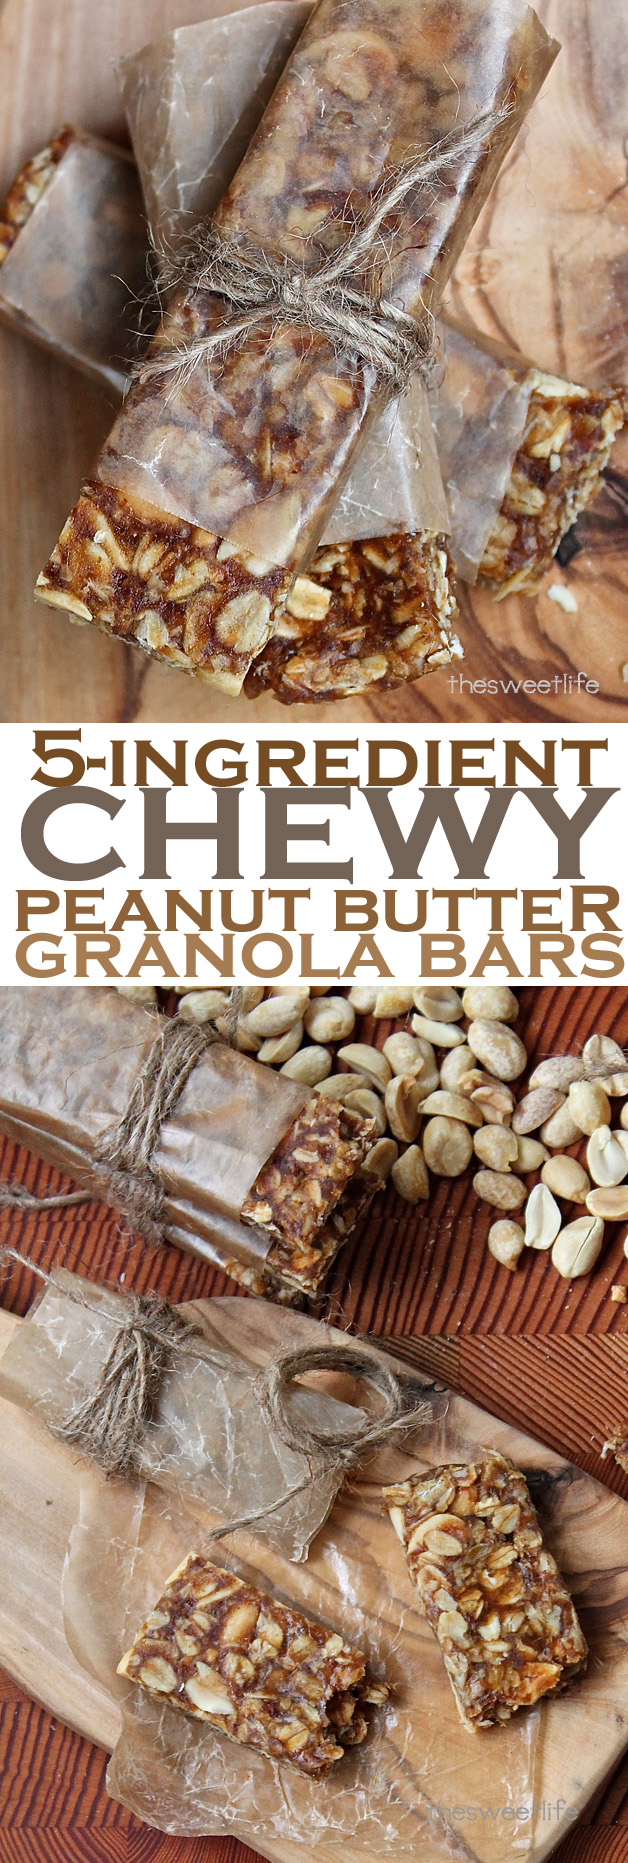 These vegan Chewy Peanut Butter Granola bars can be thrown together in minutes and make the perfect snack for yourself and your kids. Click the photo for the full recipe.